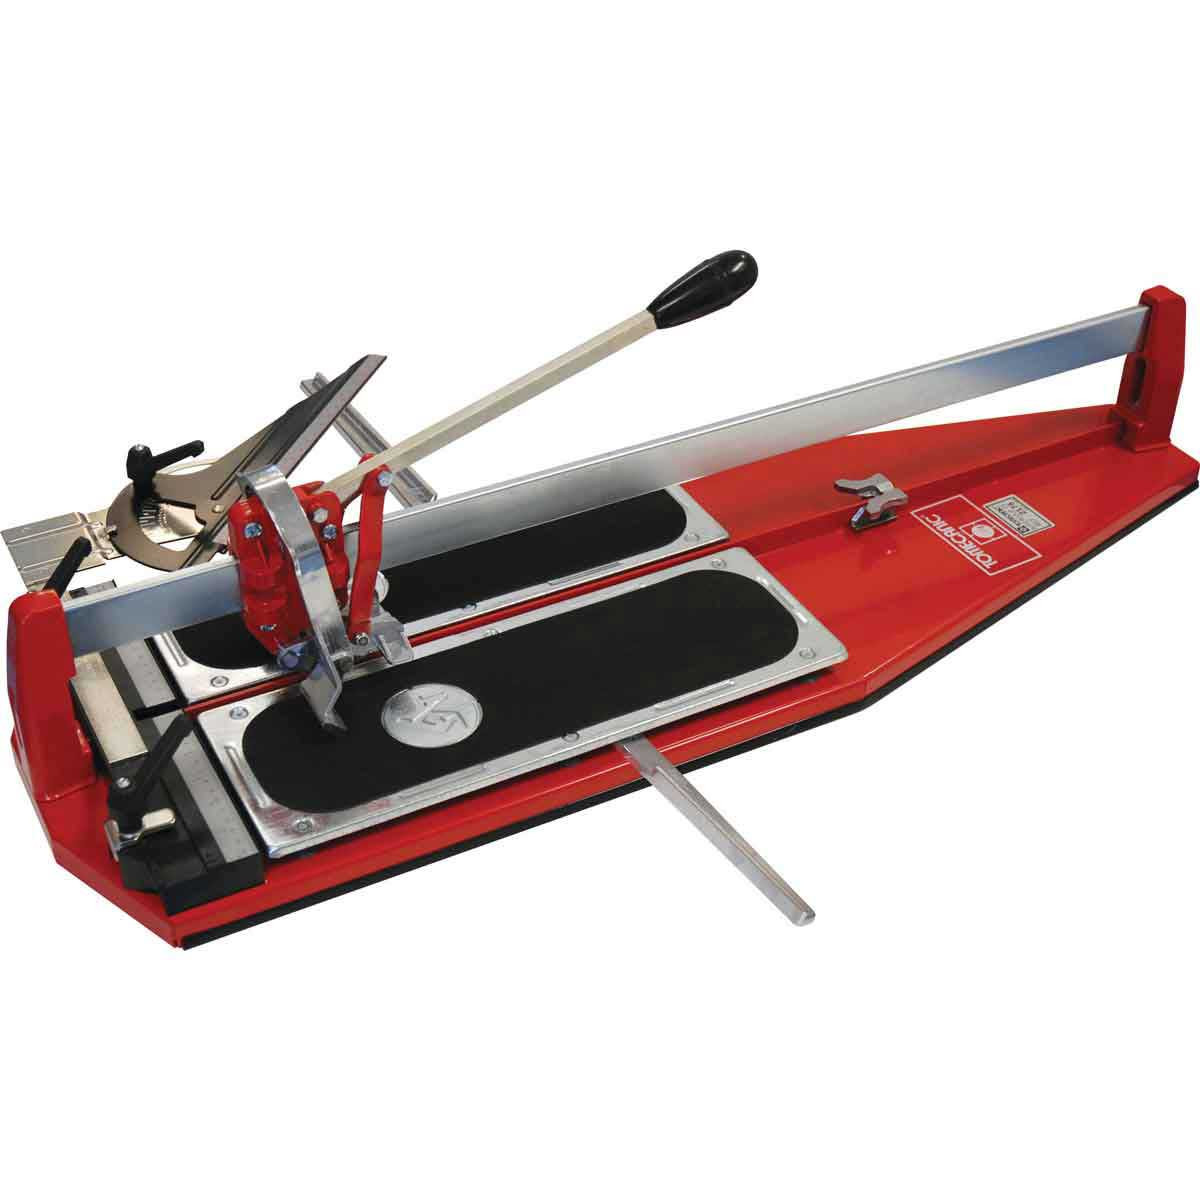 Tomecanic supercut 2175 tile cutter